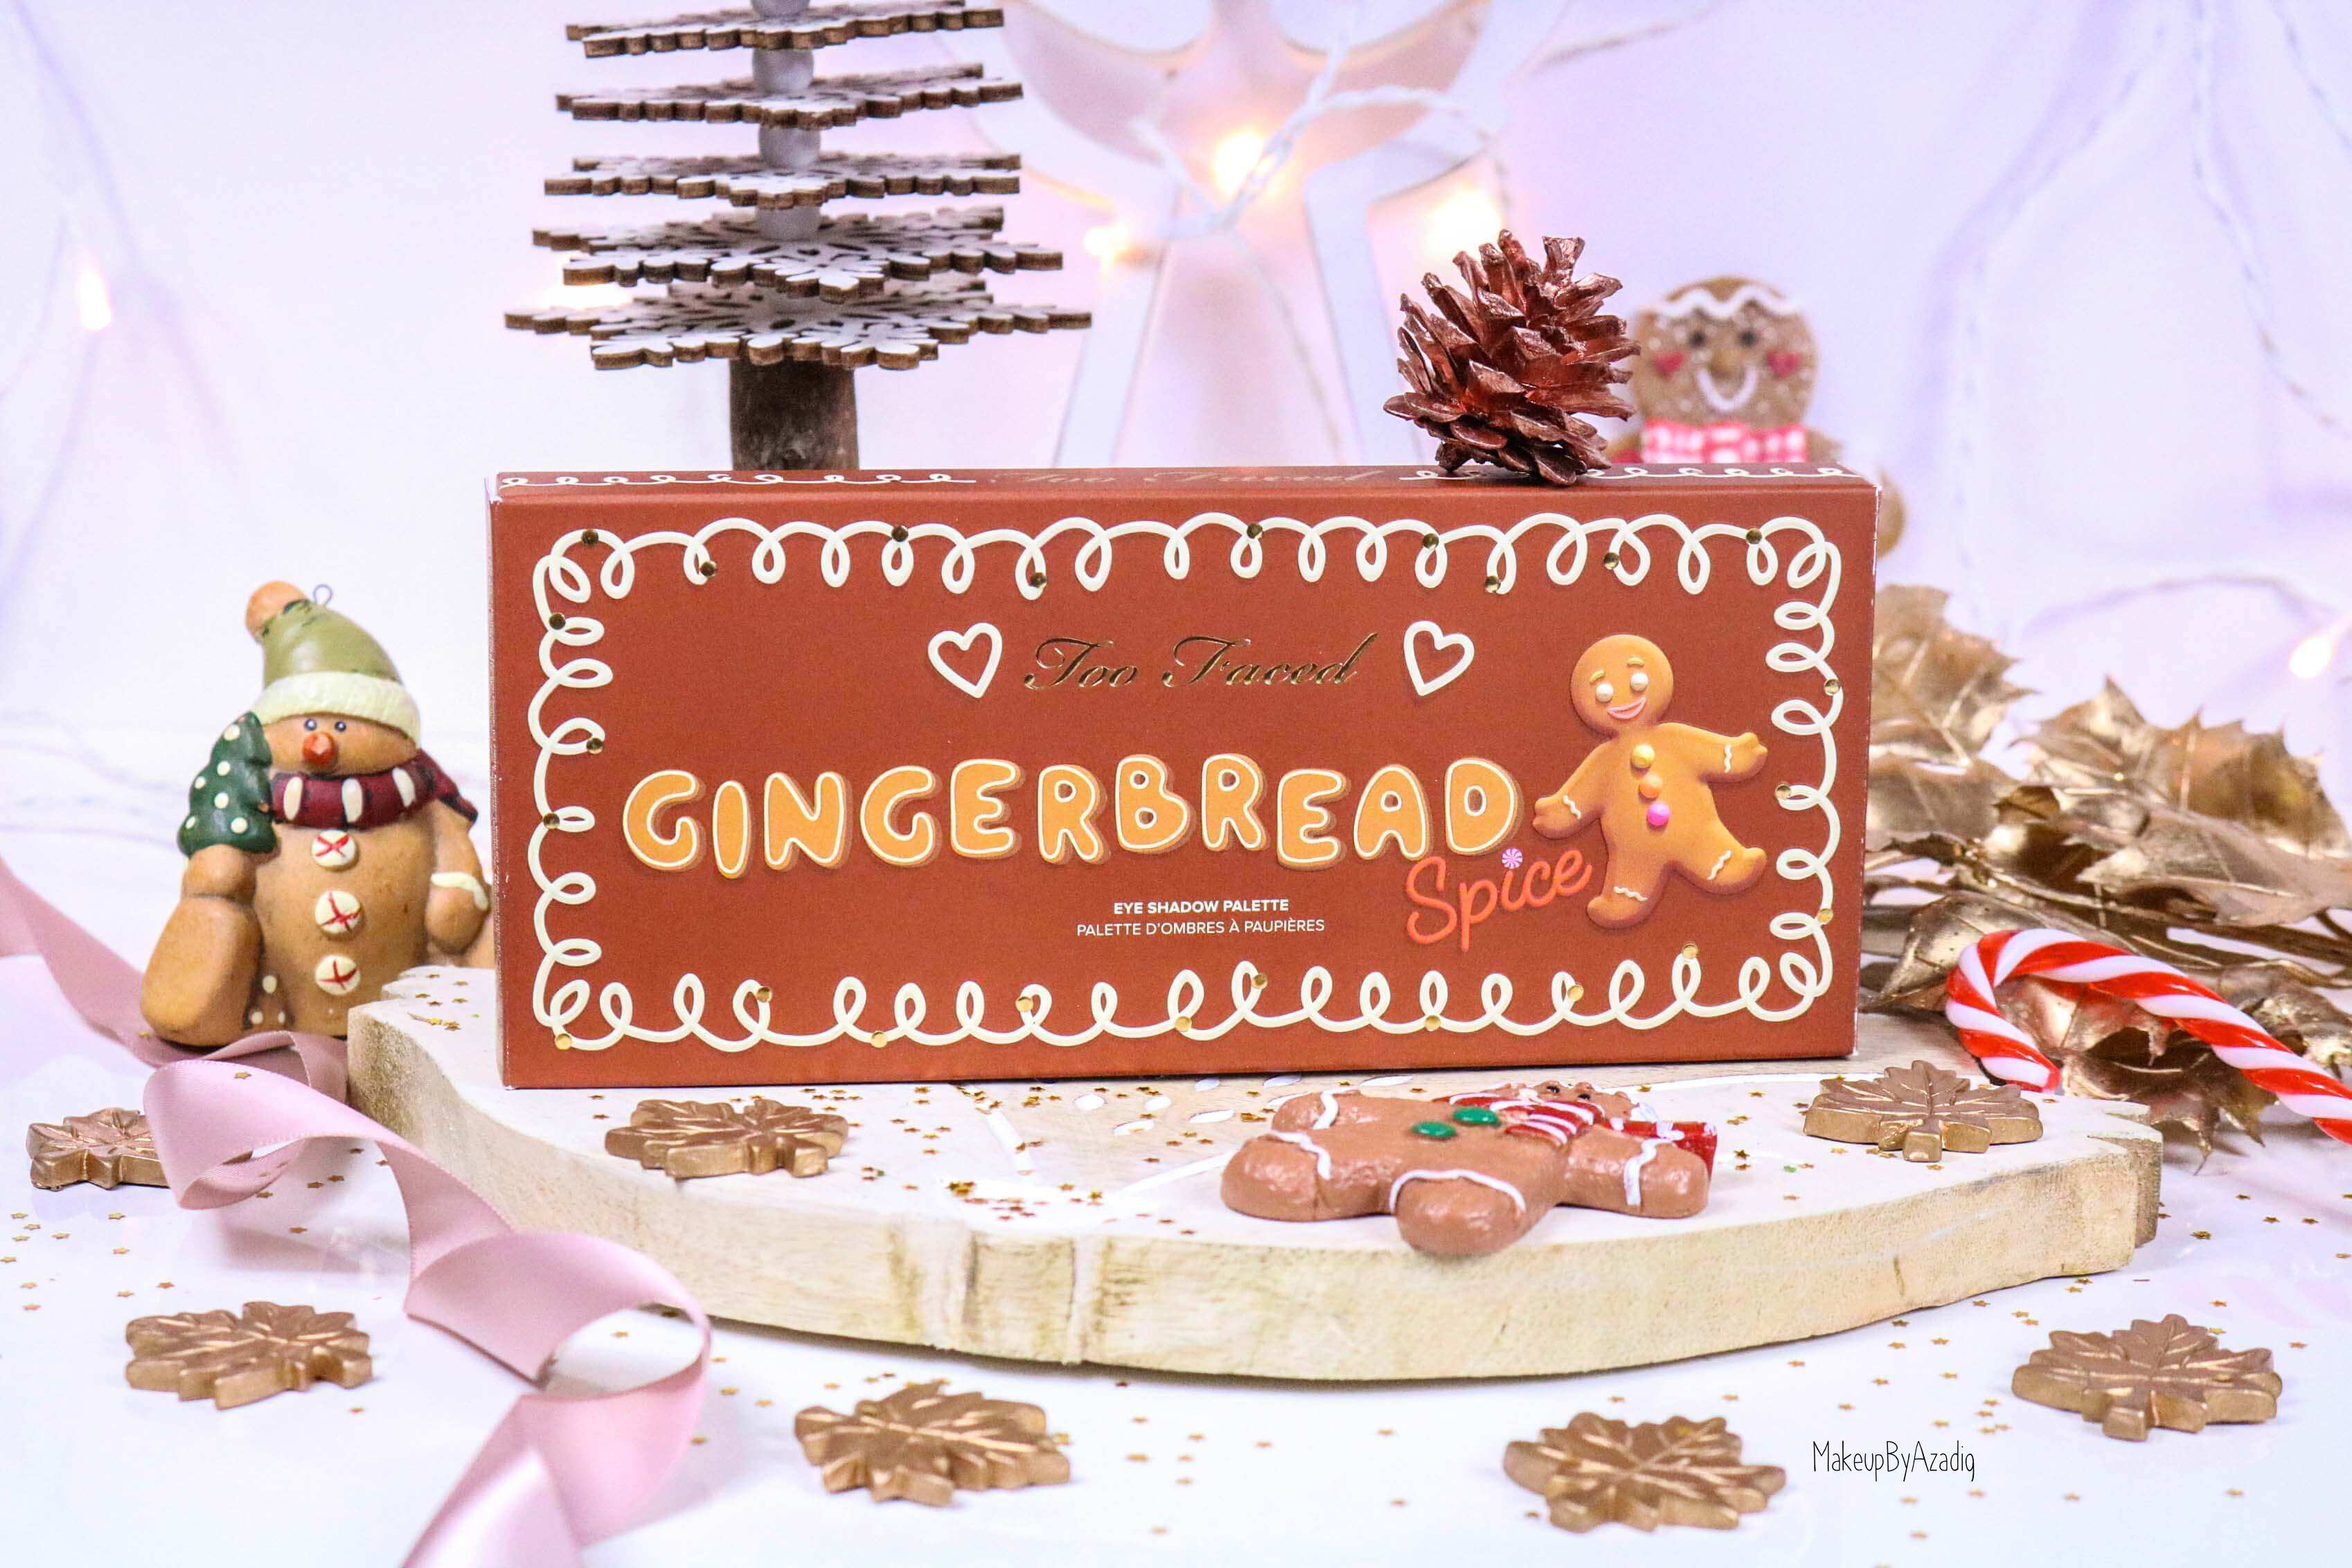 revue-palette-too-faced-gingerbread-spice-noel-france-makeupbyazadig-avis-prix-swatch-cute-packaging